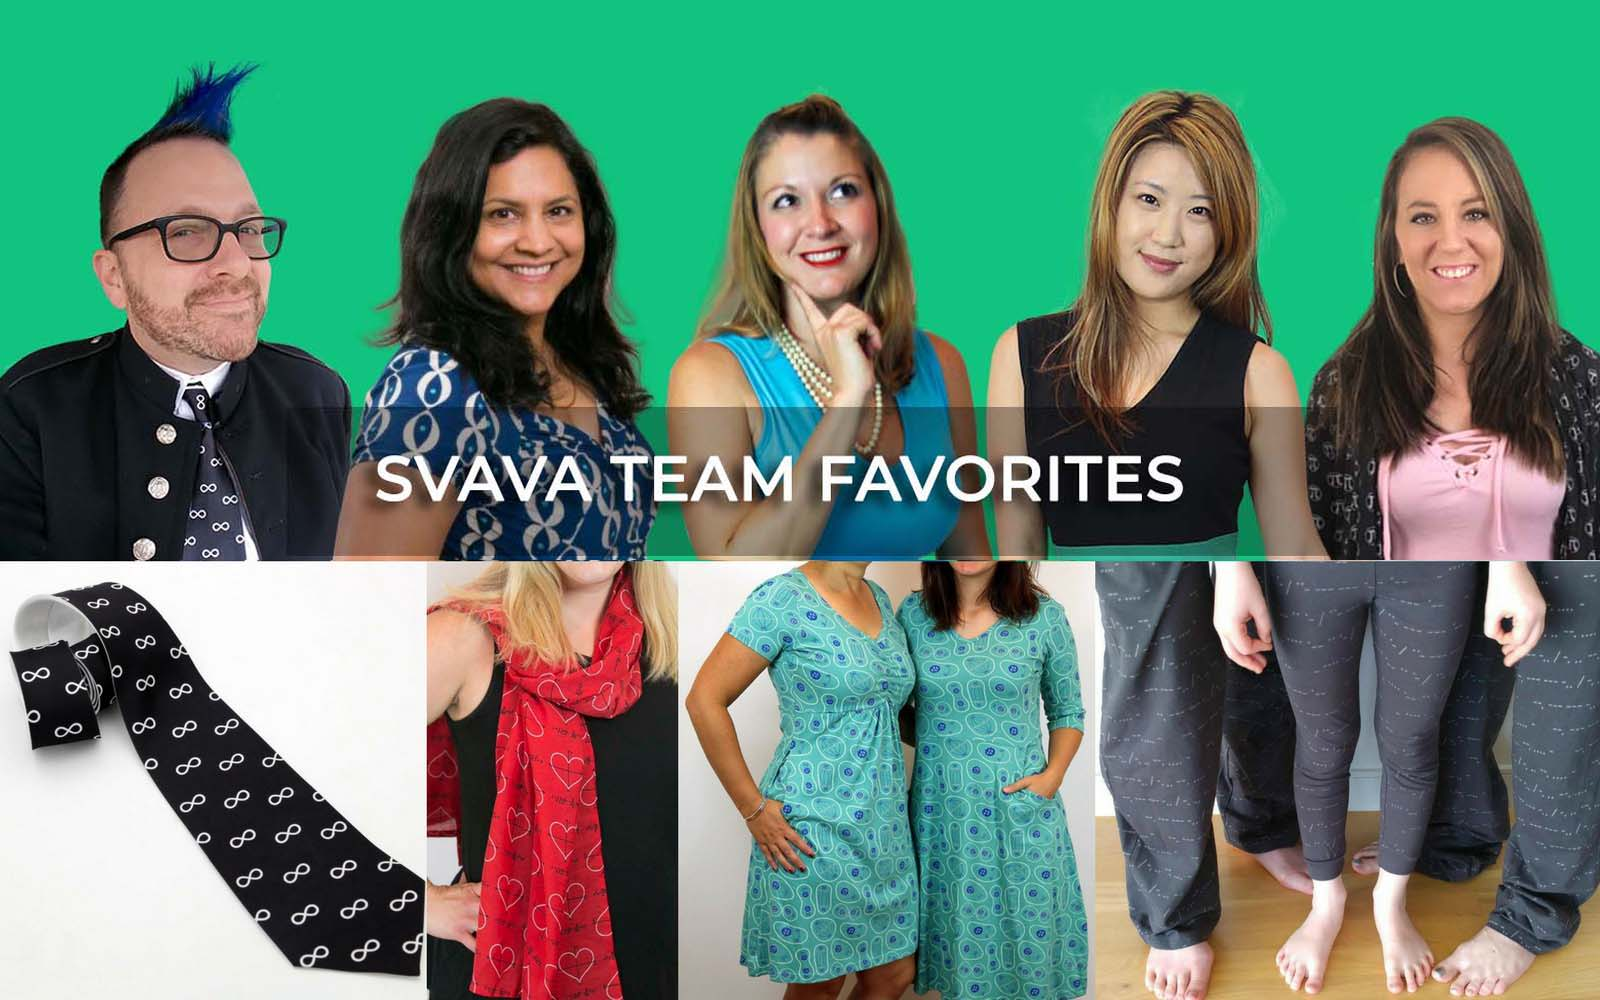 svaha team favorites